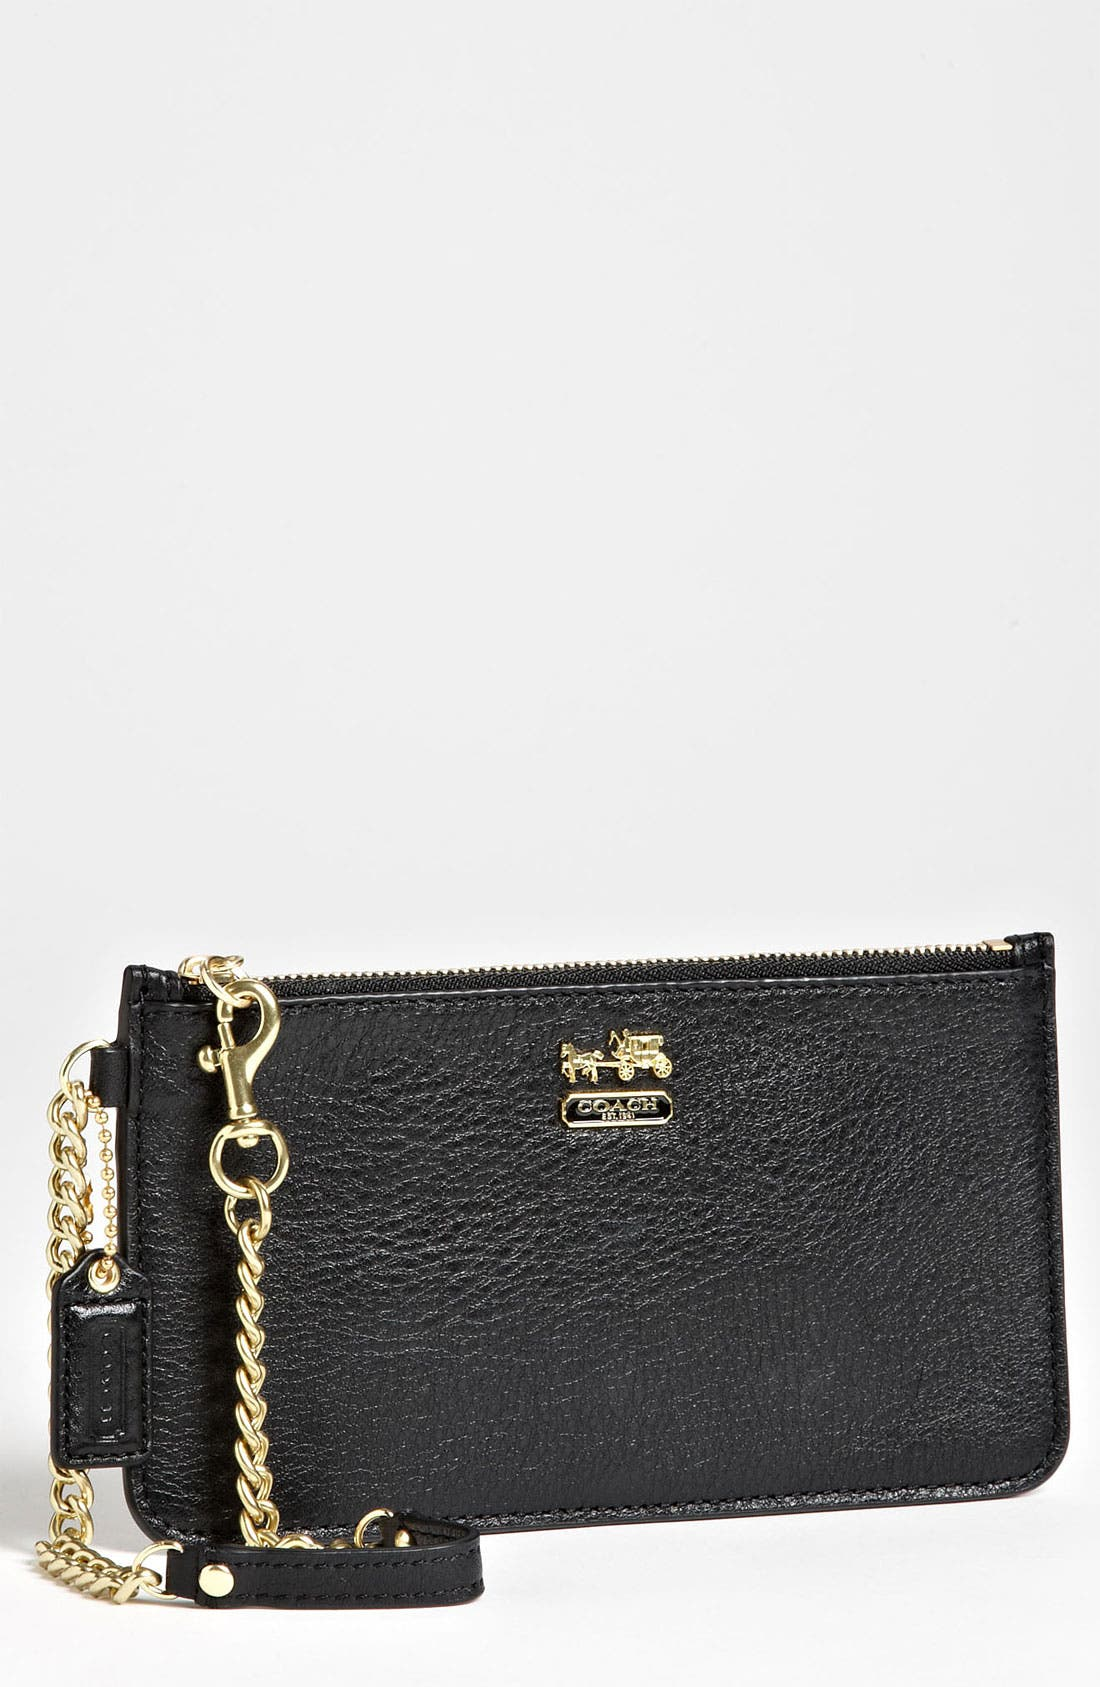 Main Image - COACH 'Madison' Leather Wristlet